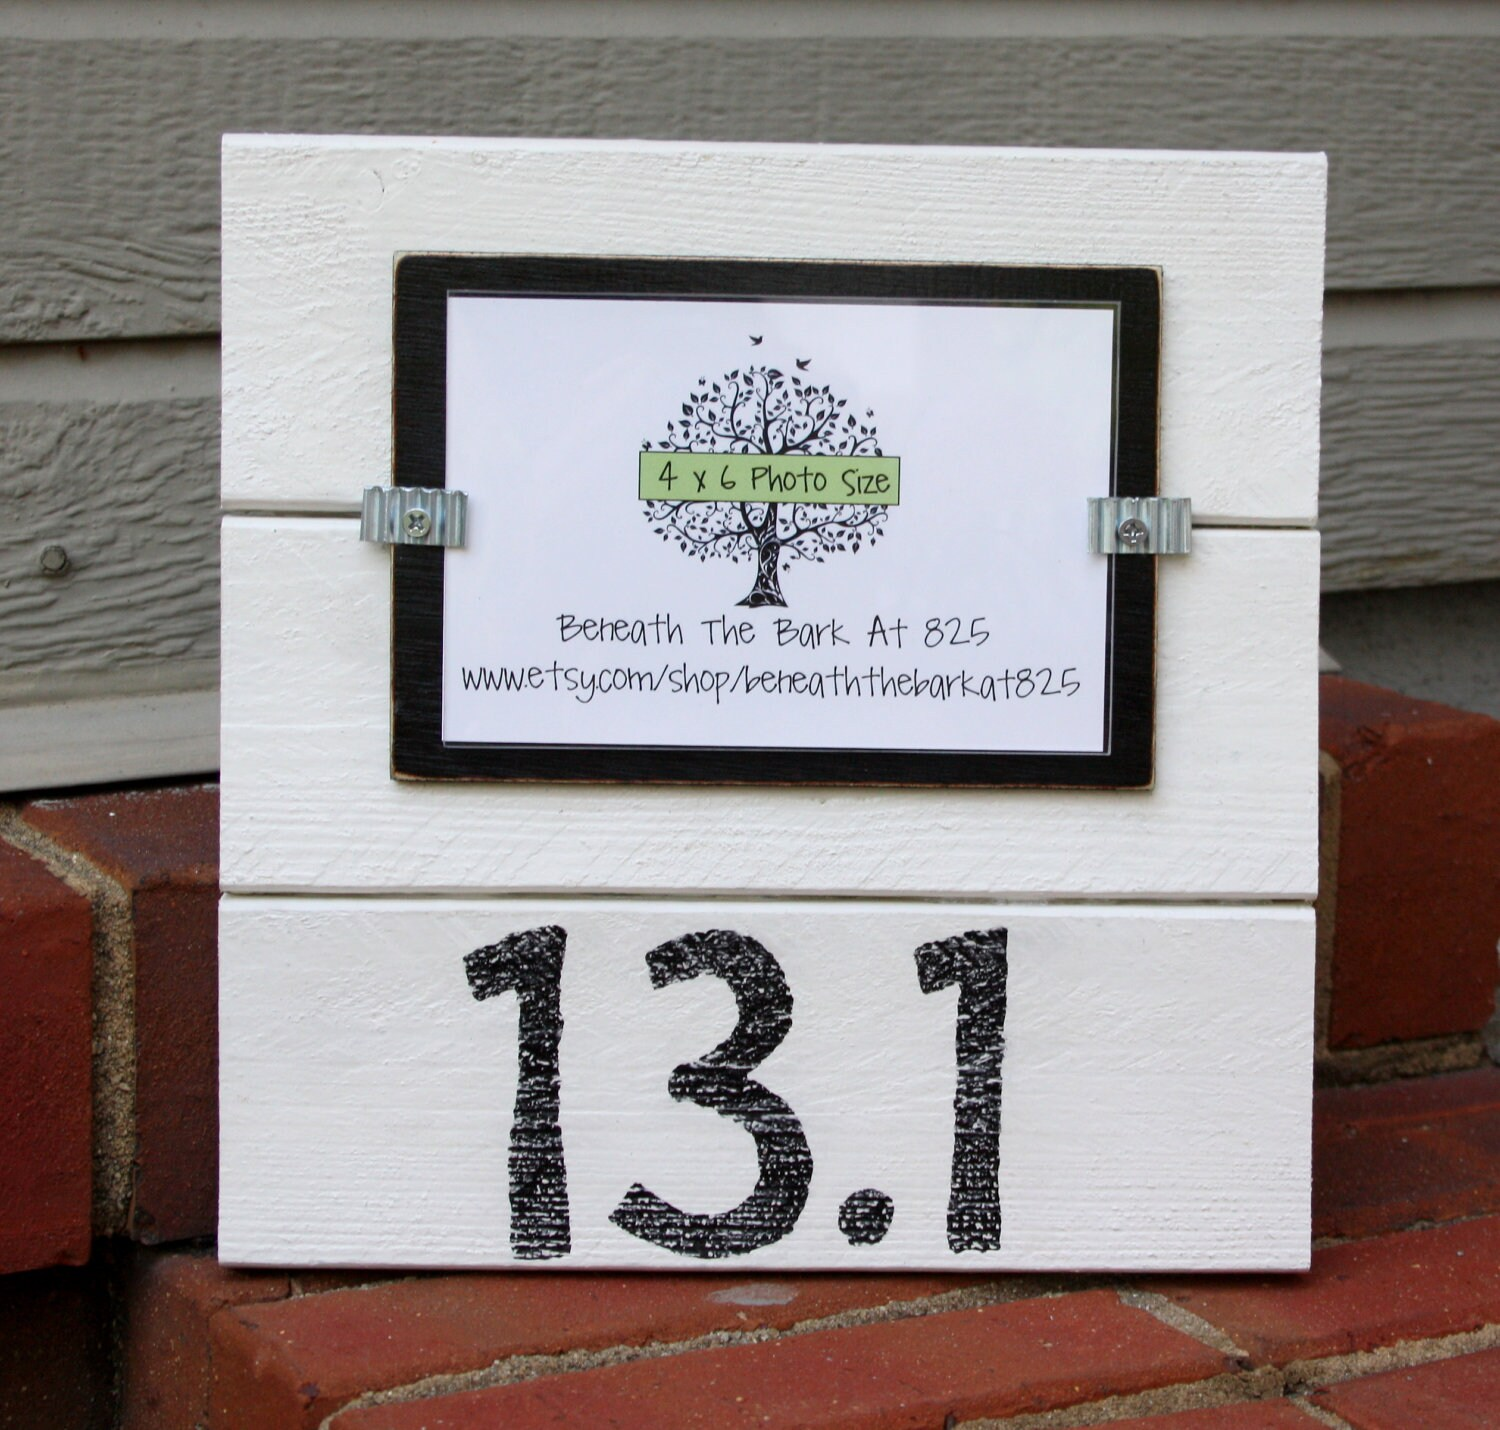 131 Half Marathon Wood Picture Frame Holds A 4x6 Photo Etsy